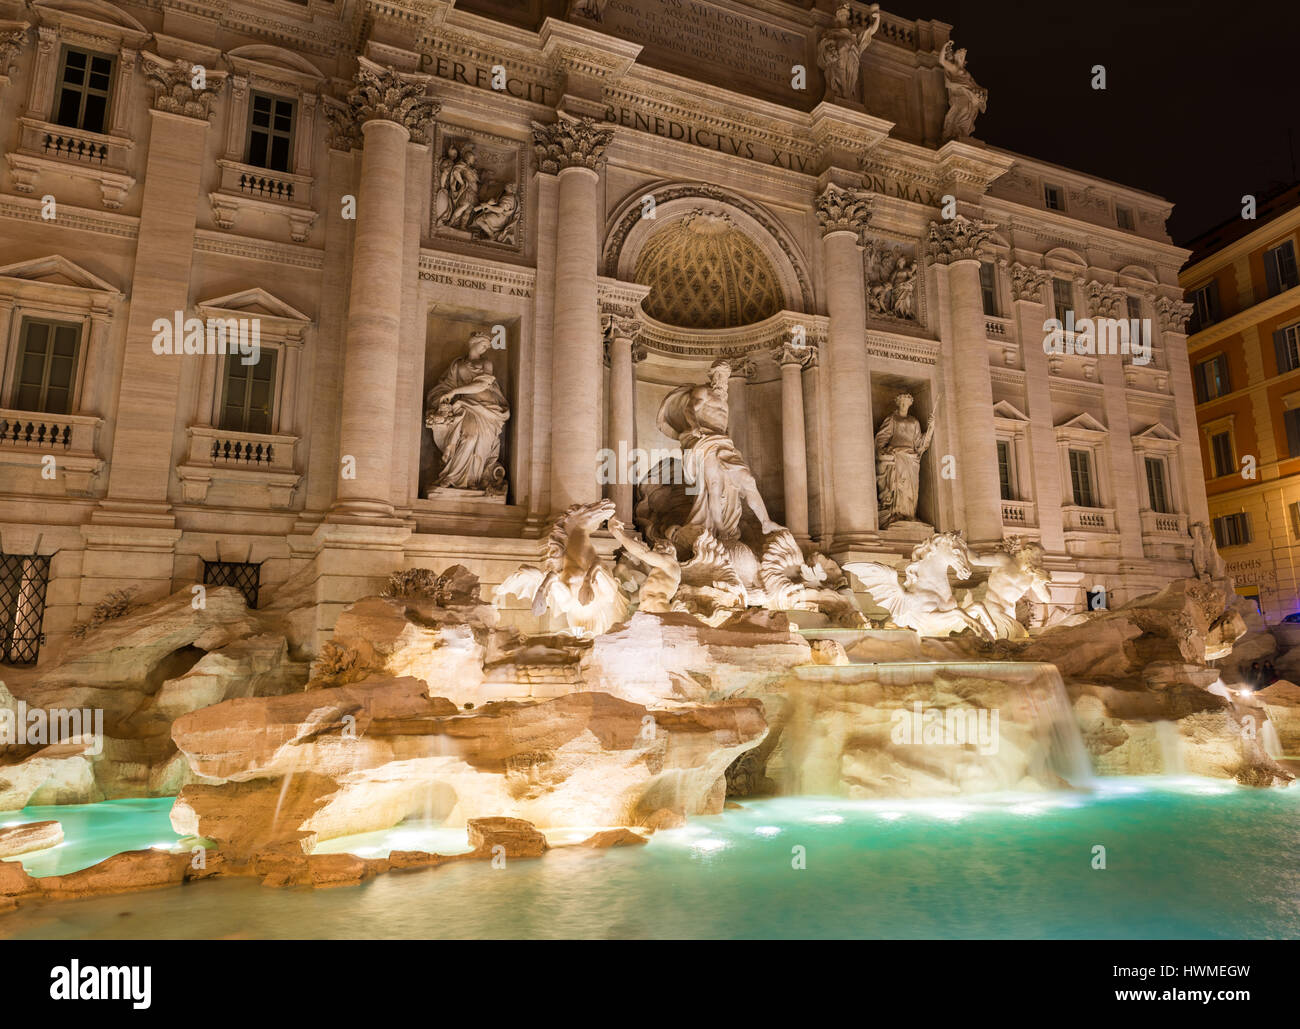 The Trevi Fountain  (Fontana di Trevi)  by night.  Pietro Bracci's statue, Oceanus (god of all water) is seen - Stock Image